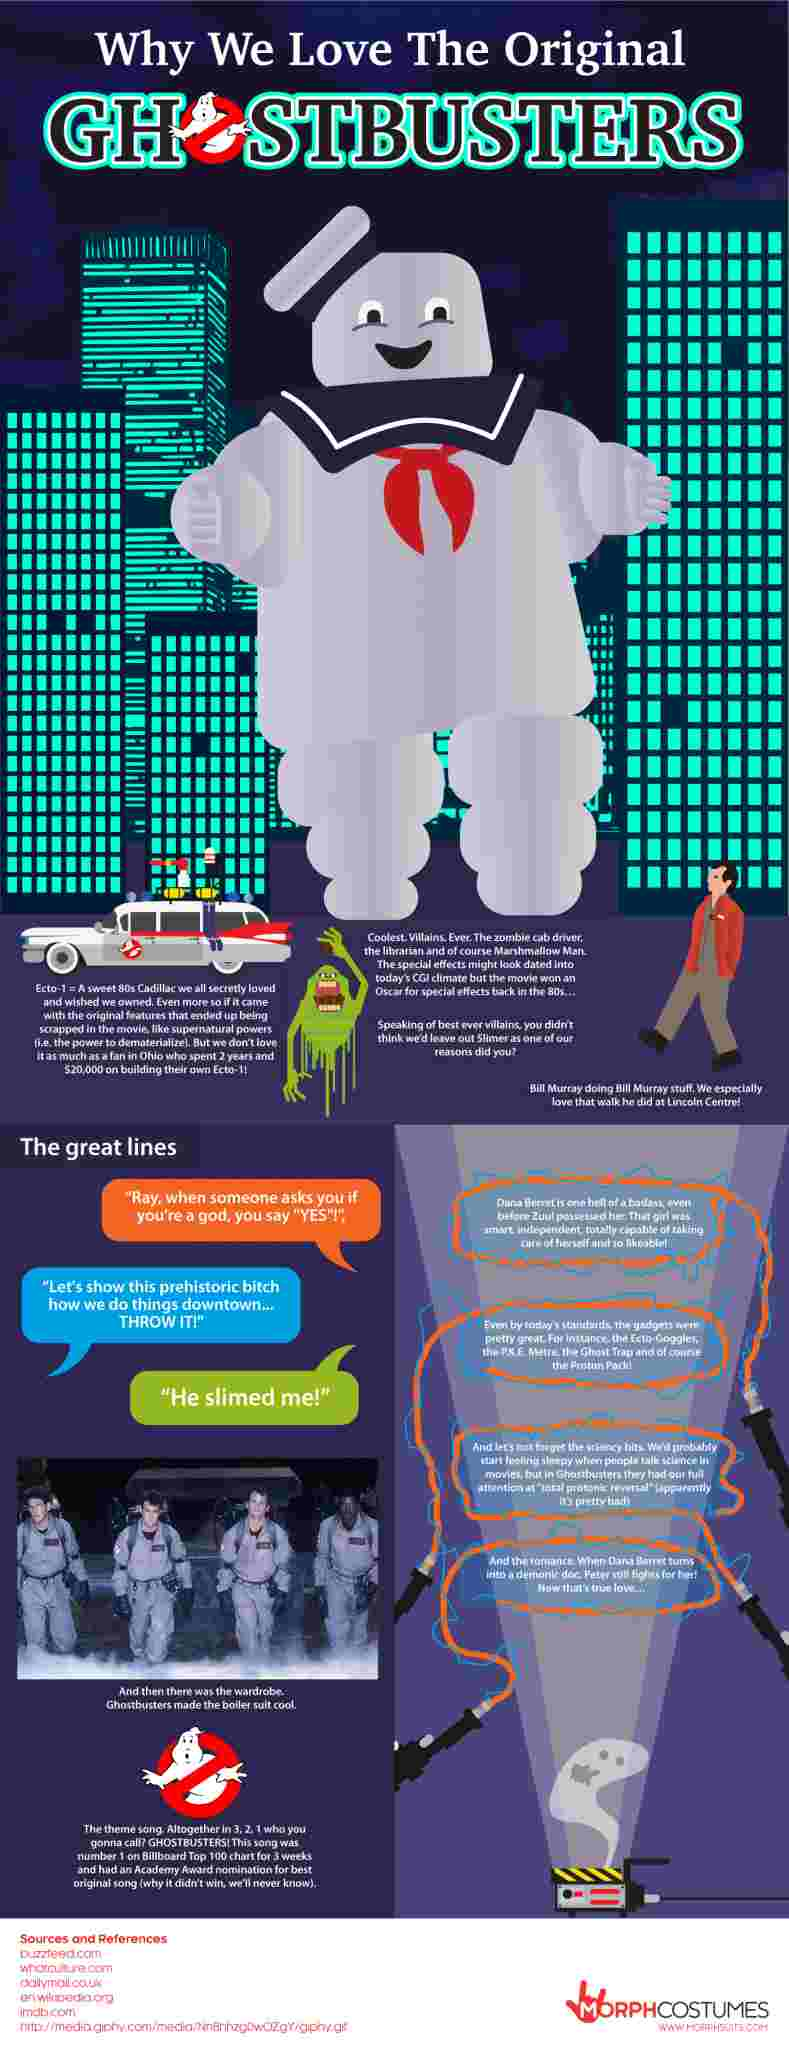 Why-We-Love-The-Original-Ghostbusters-Infographic